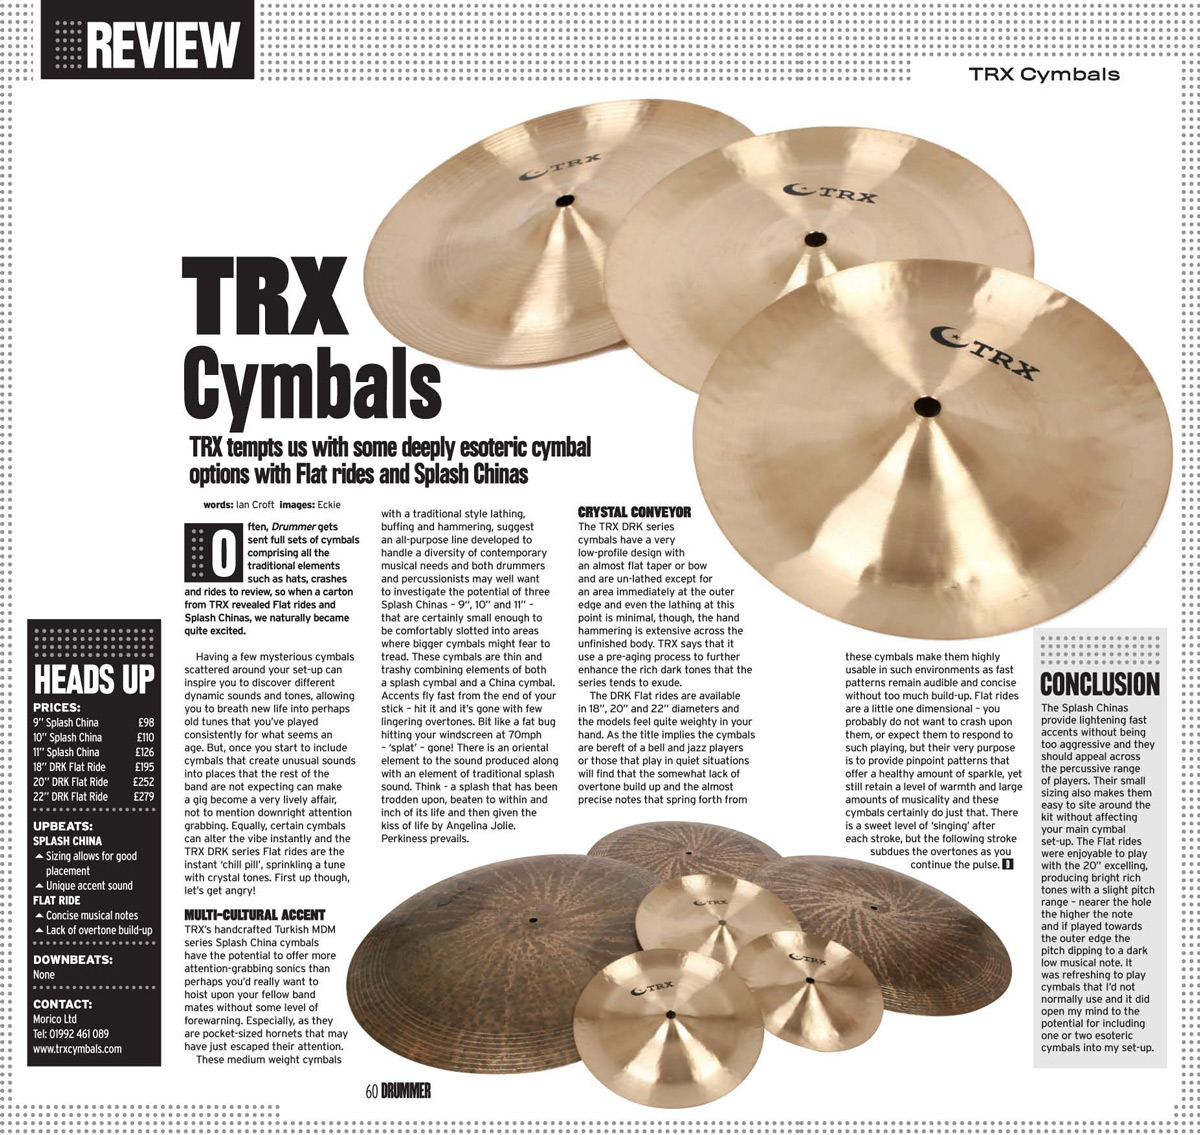 TRX Specials Review In Drummer Magazine